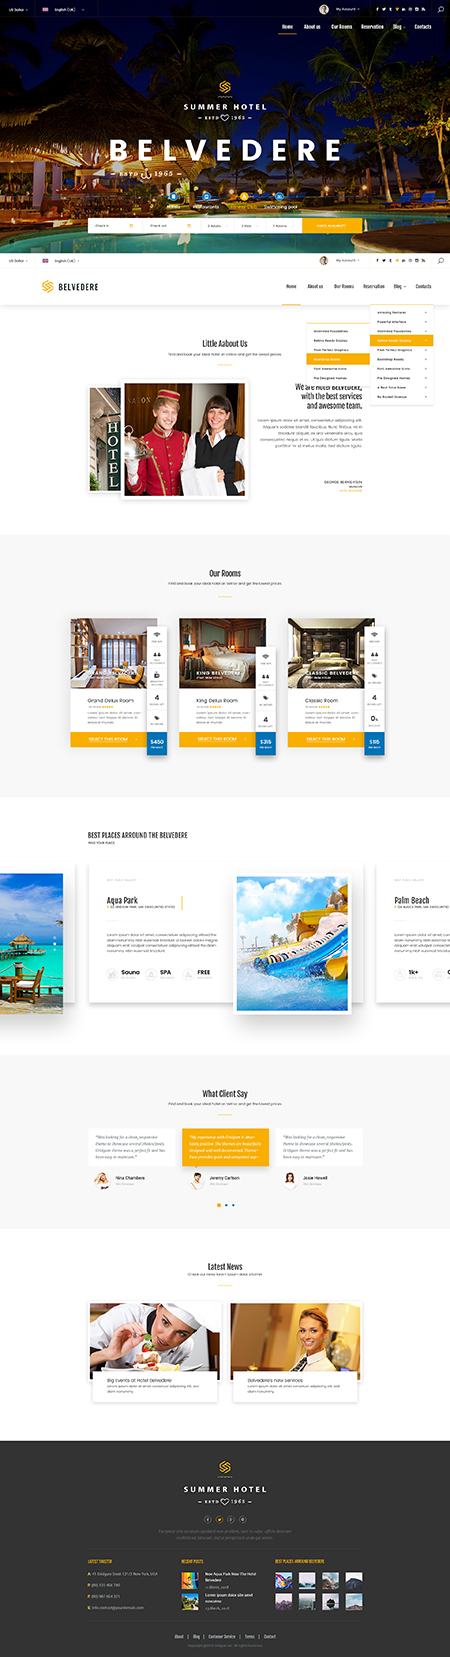 Hotel Belvedere Bootstrap template ID: 300111939